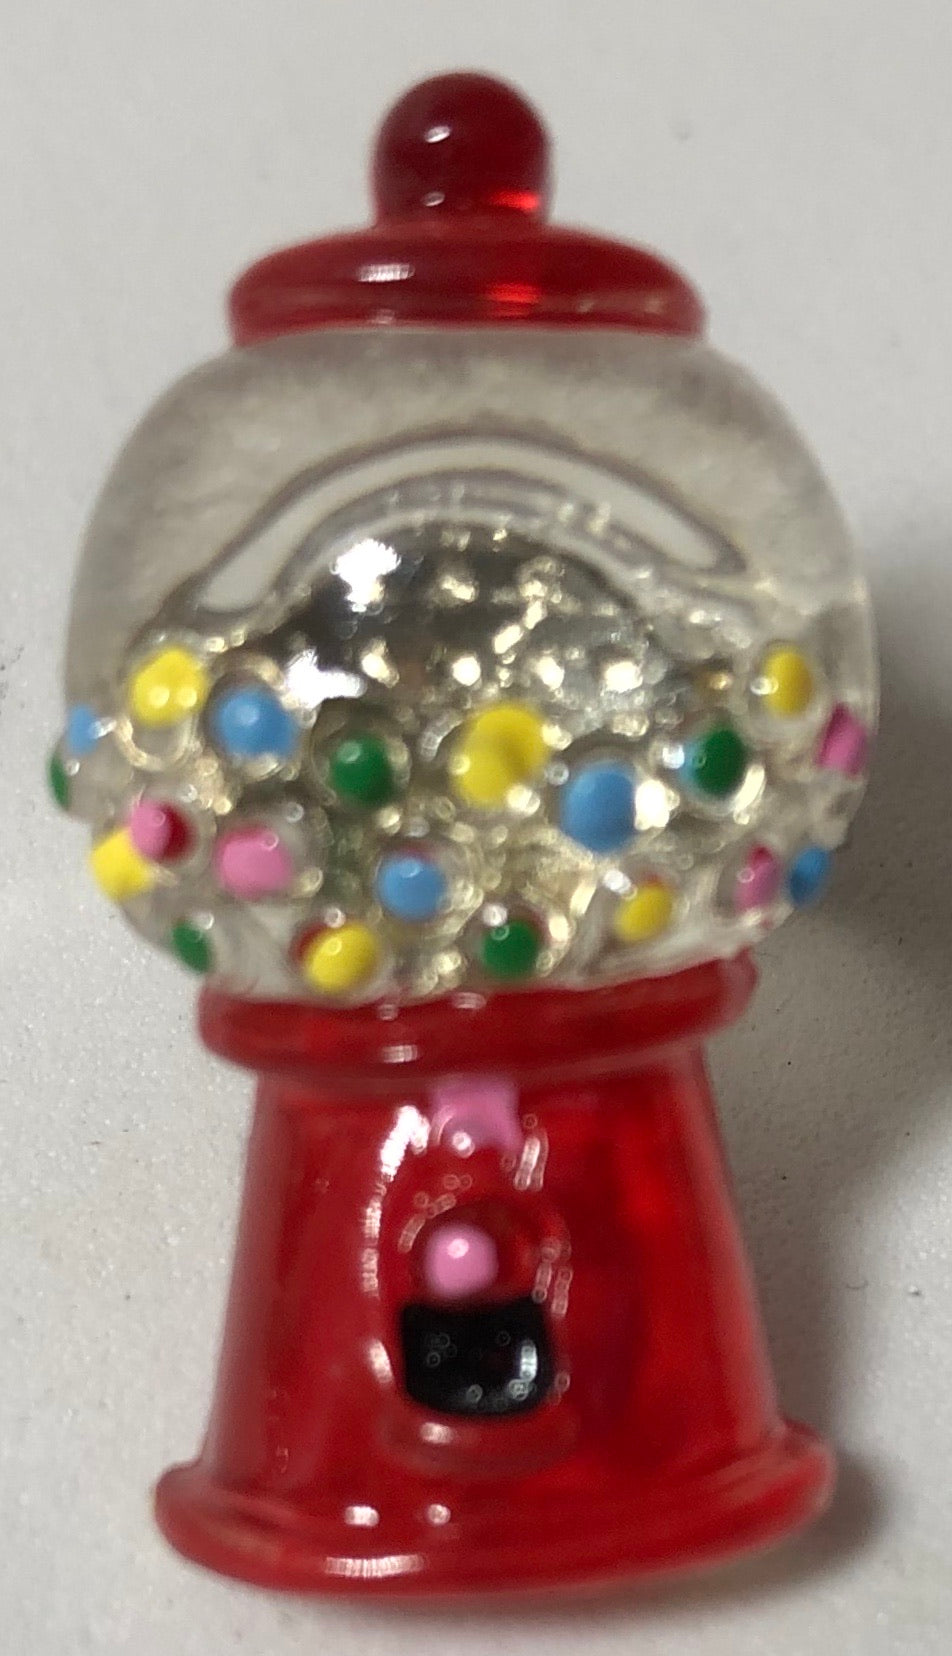 Gumball Machine Ring - Demize Collectibles LTD